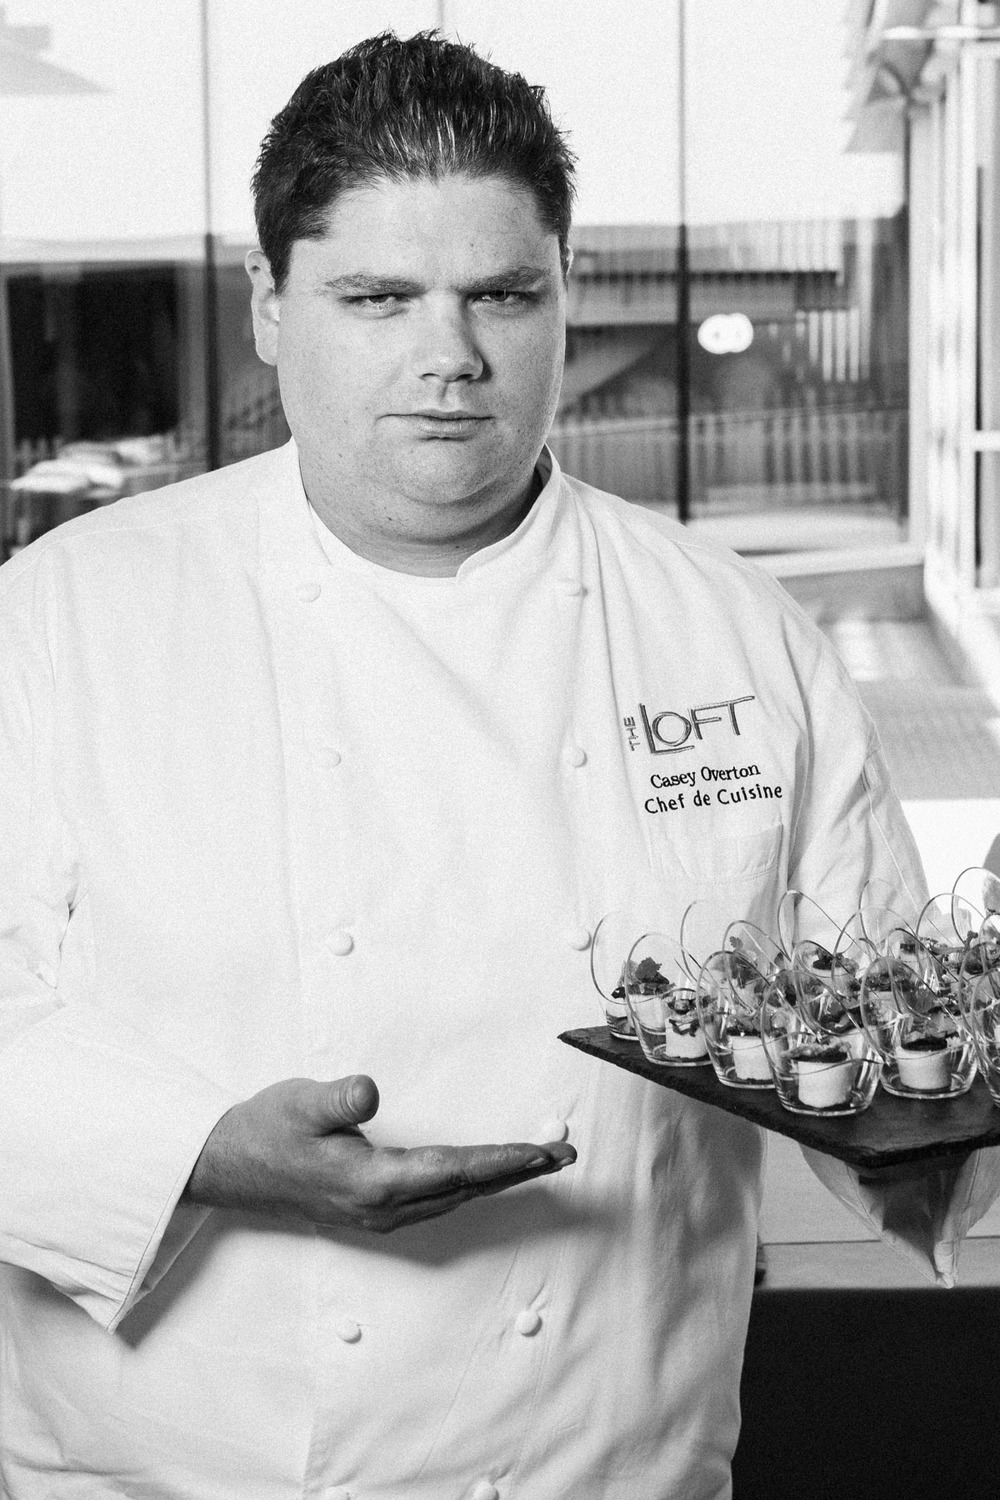 13. Chef Casey Overton / The Loft @ Montage / Laguna Beach, California